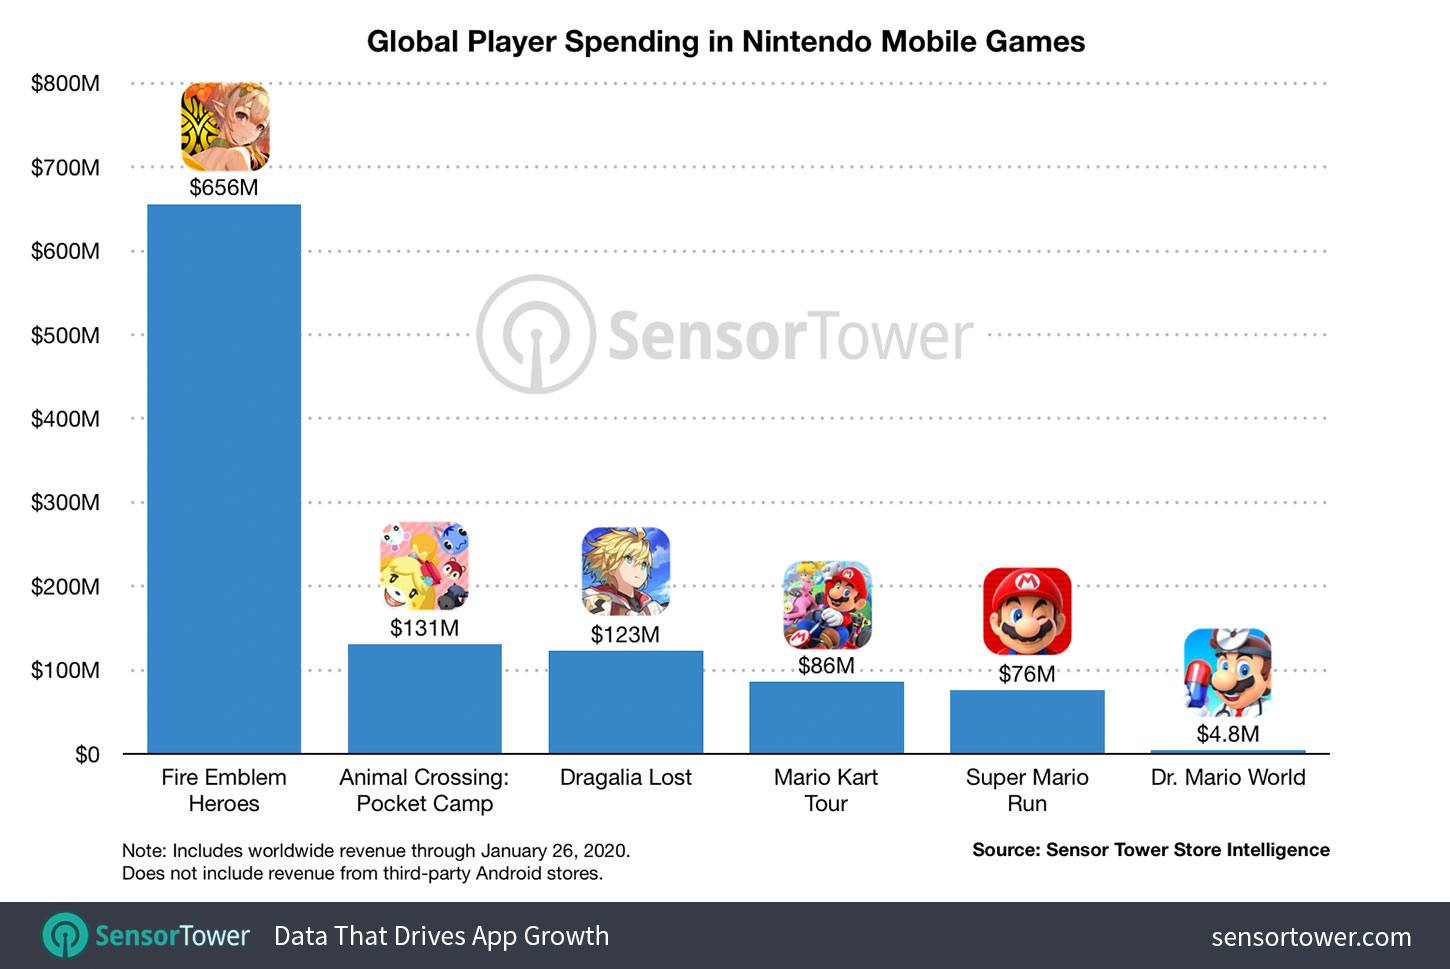 Nintendo Mobile Games Hit $1 Billion in Player Spending